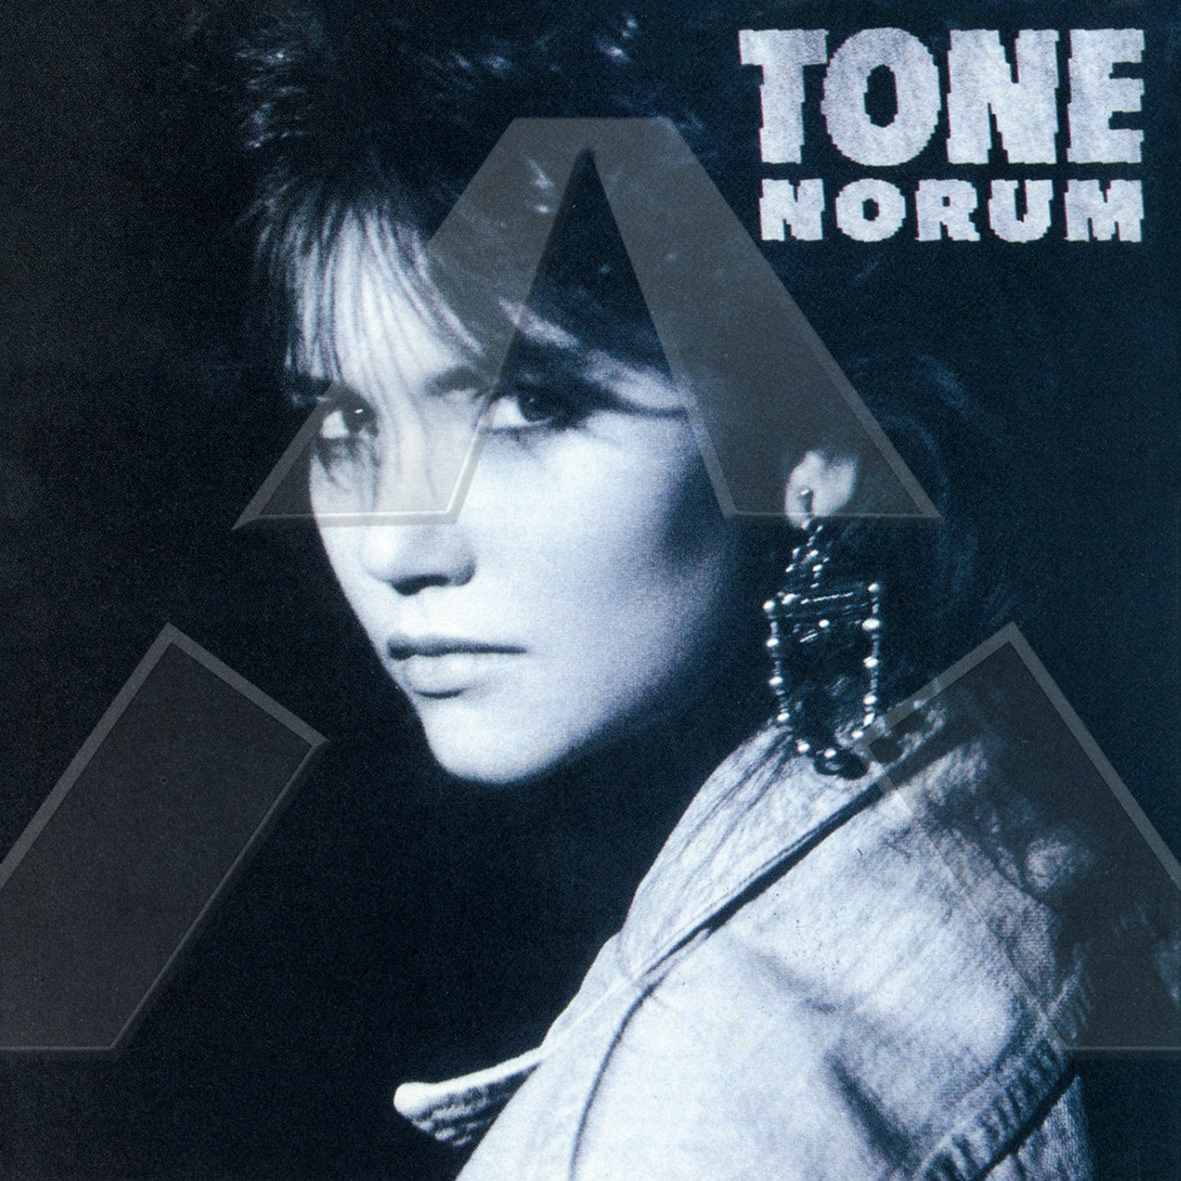 Tone Norum ★ One of a Kind (vinyl album EU)